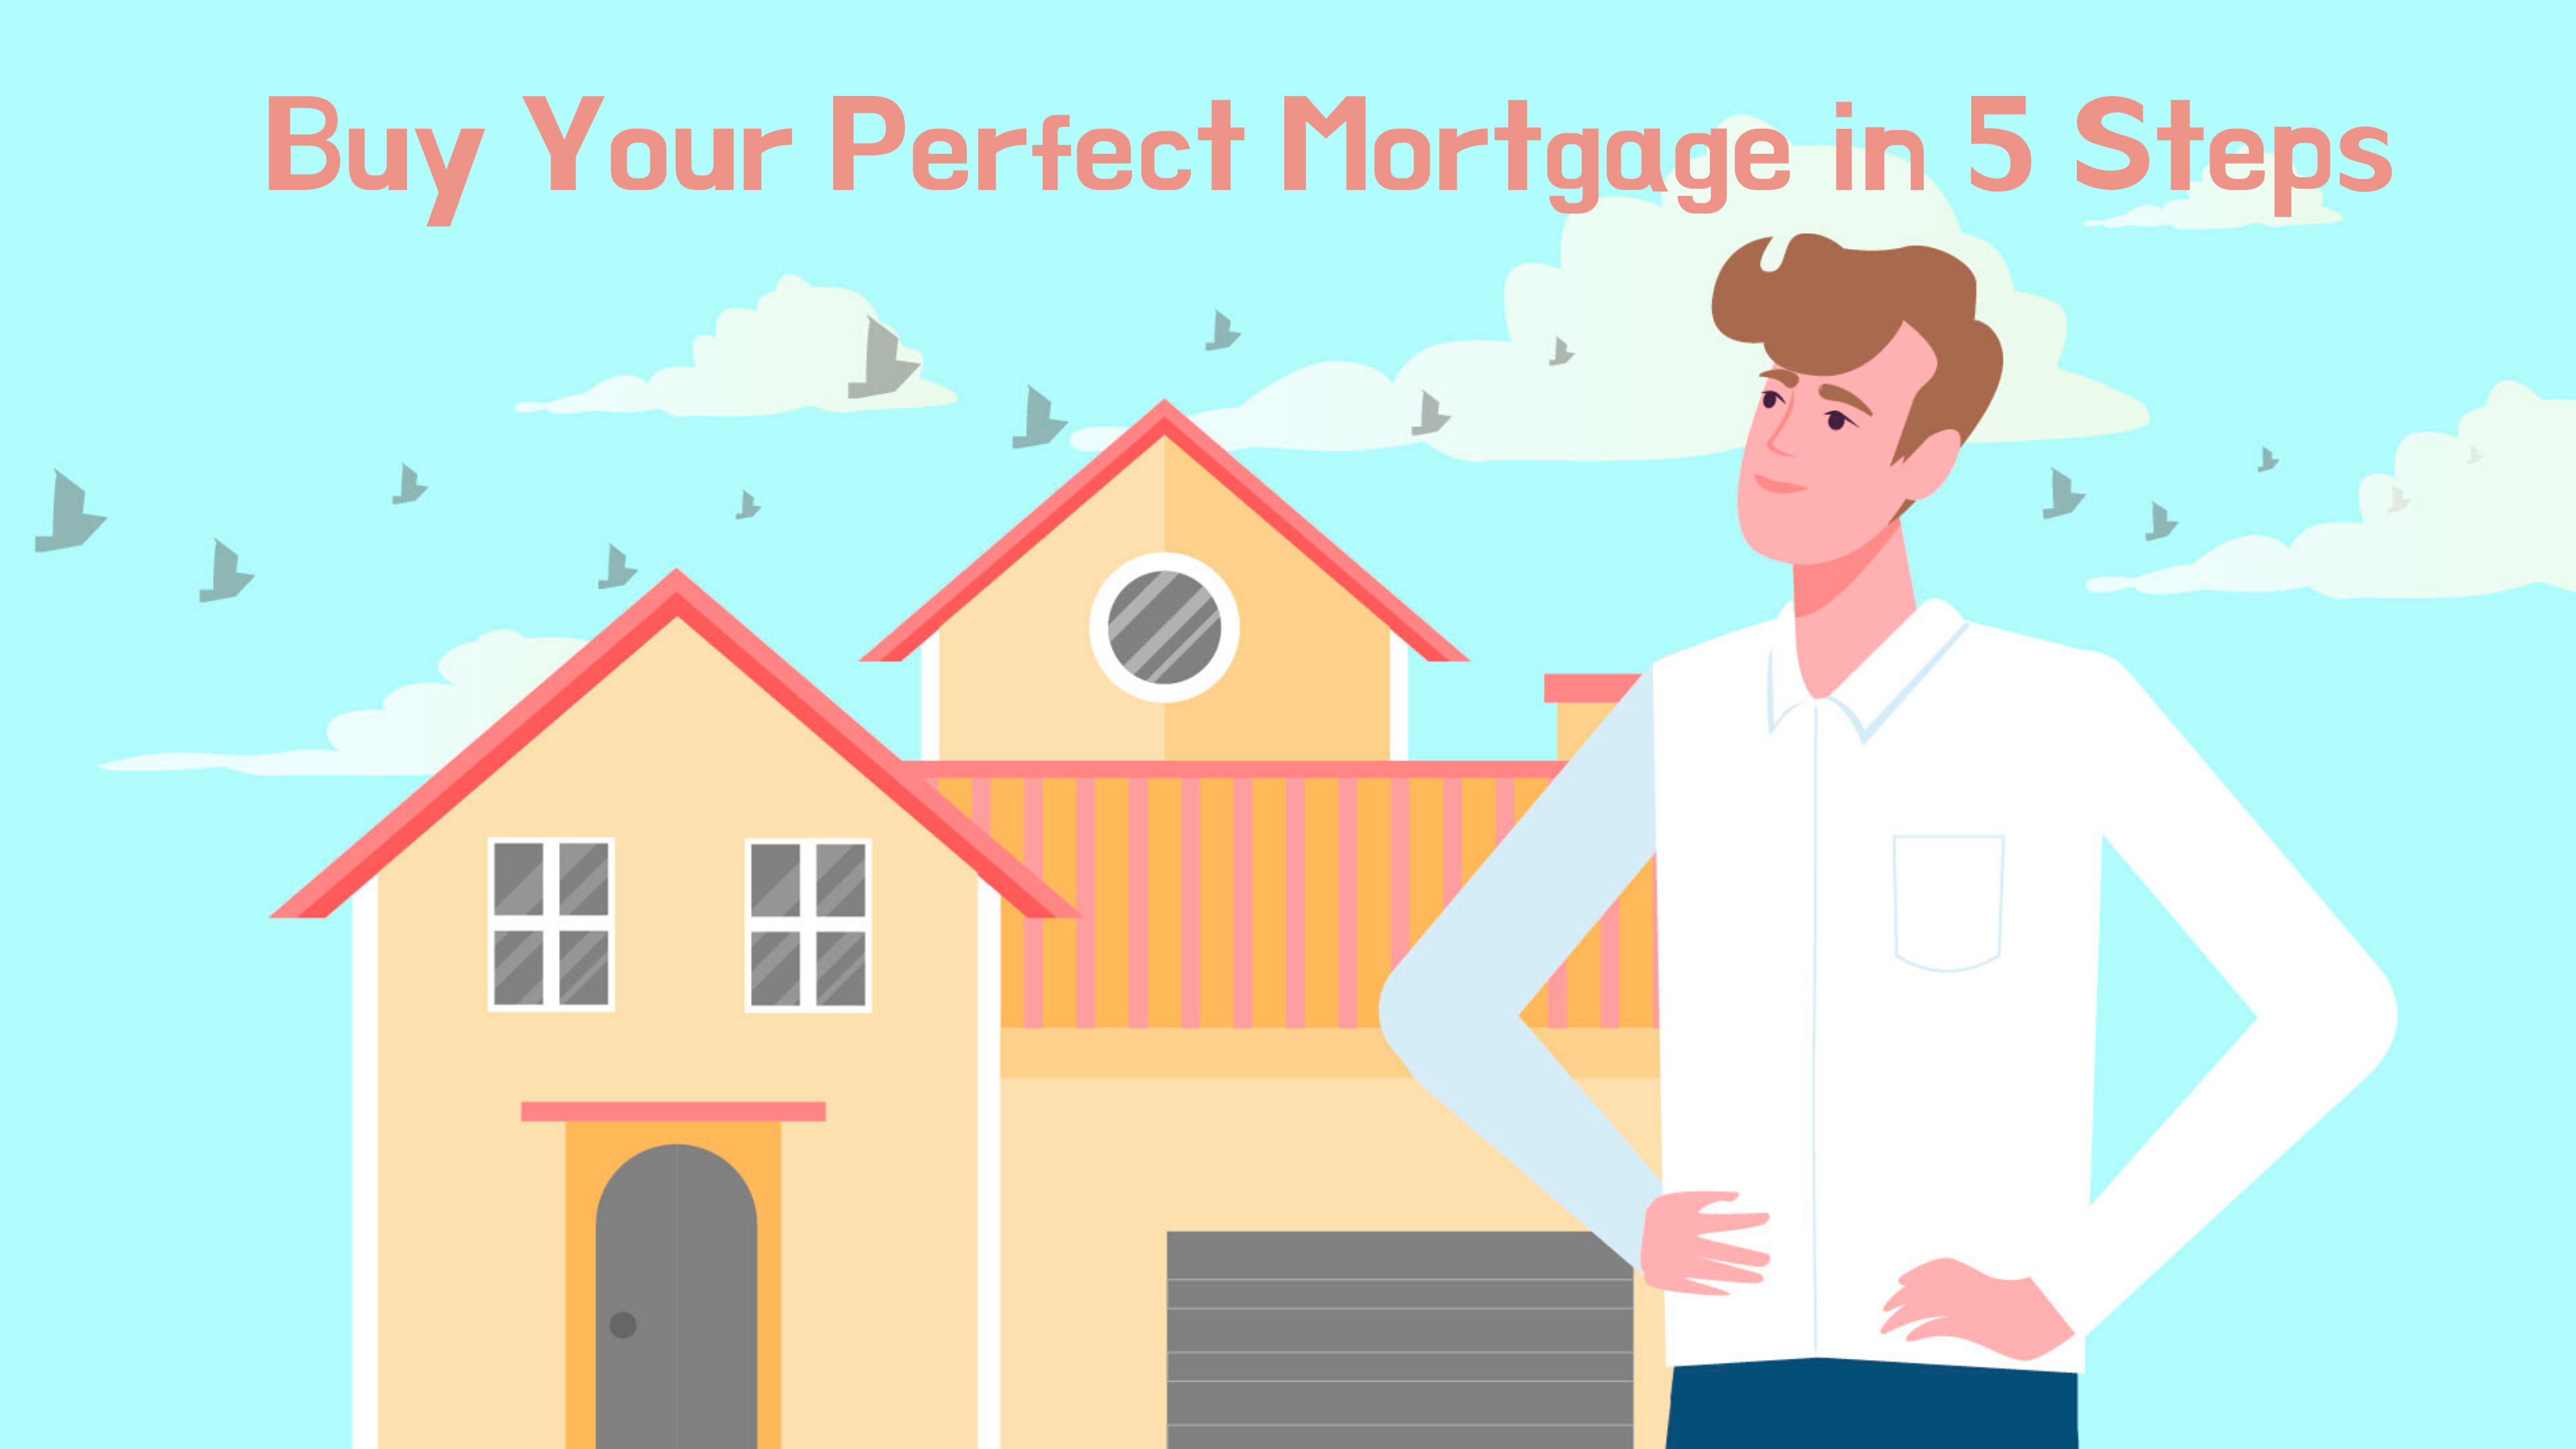 Buy Your Perfect Mortgage in 5 Steps - Animated Video